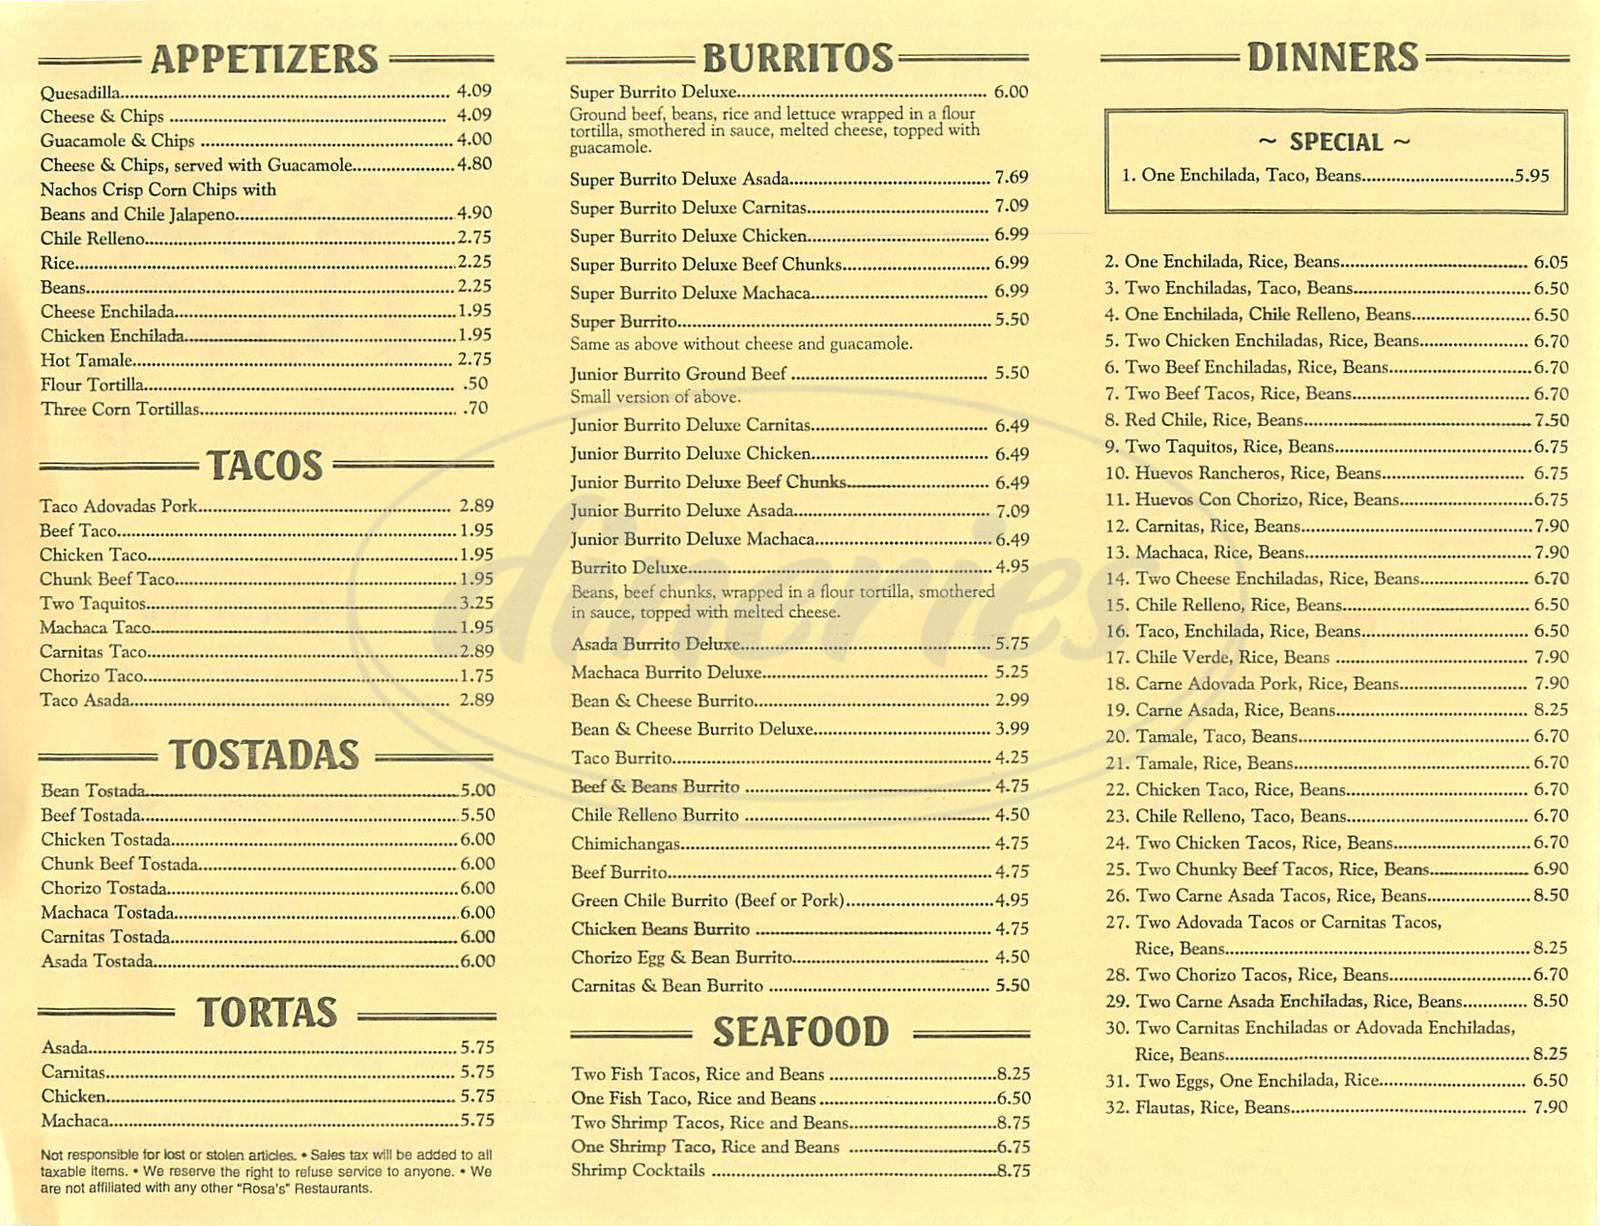 menu for Rosa's Restaurant